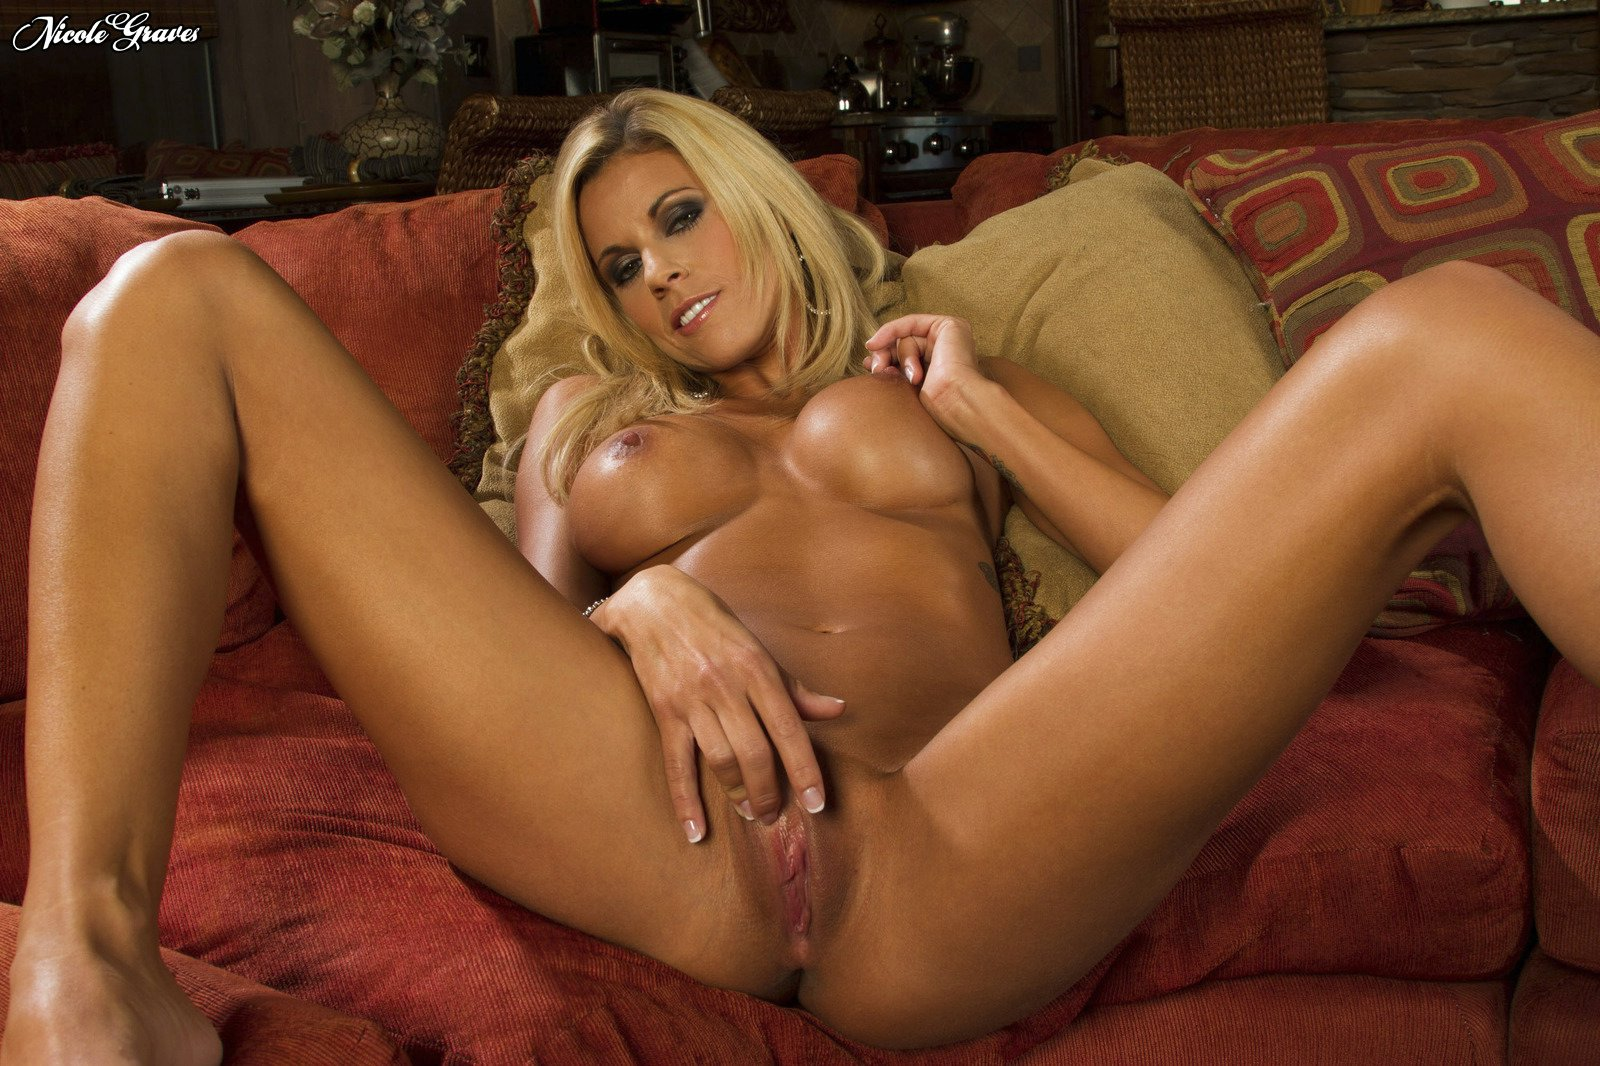 Pretty blonde Nicole Graves posing and spreading her pussy.